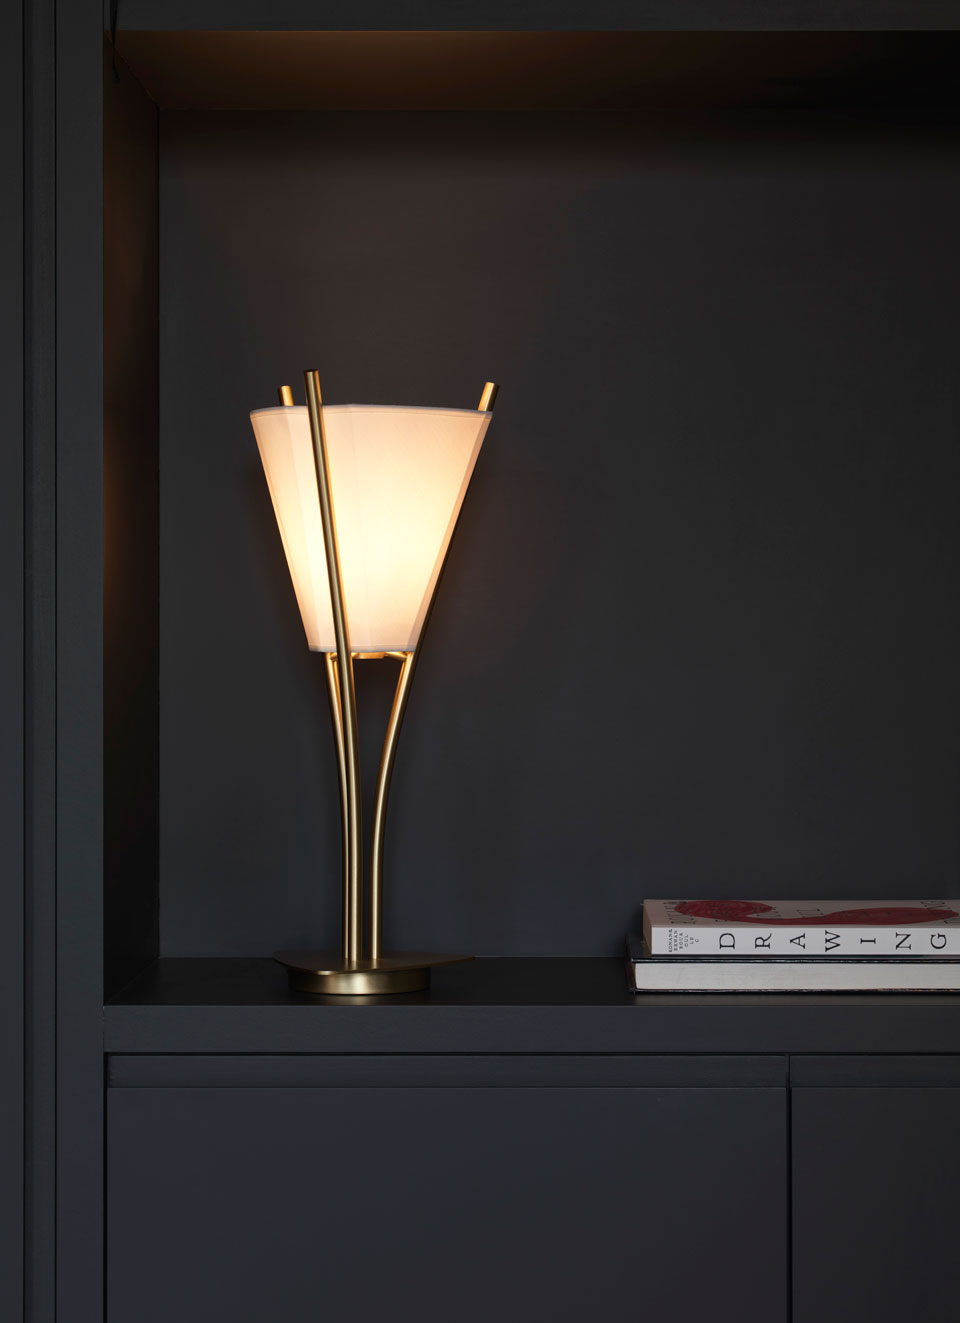 Curves design lamp, golden, thin brass rods, aerial, conical lampshade. CVL Luminaires.